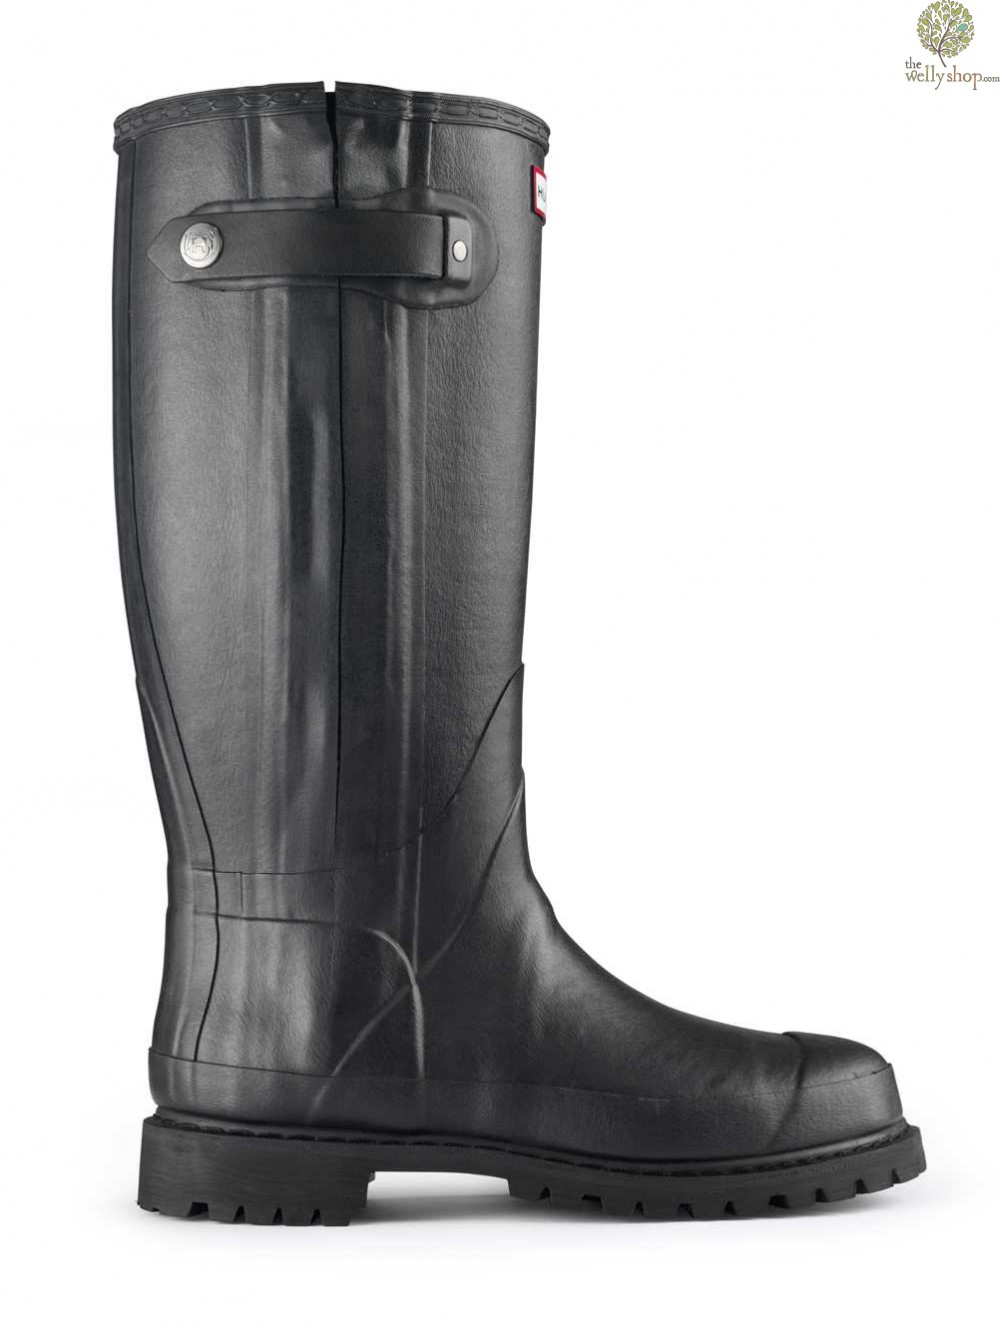 Hunter Balmoral Sovereign Rubber Boots With Leather Lining